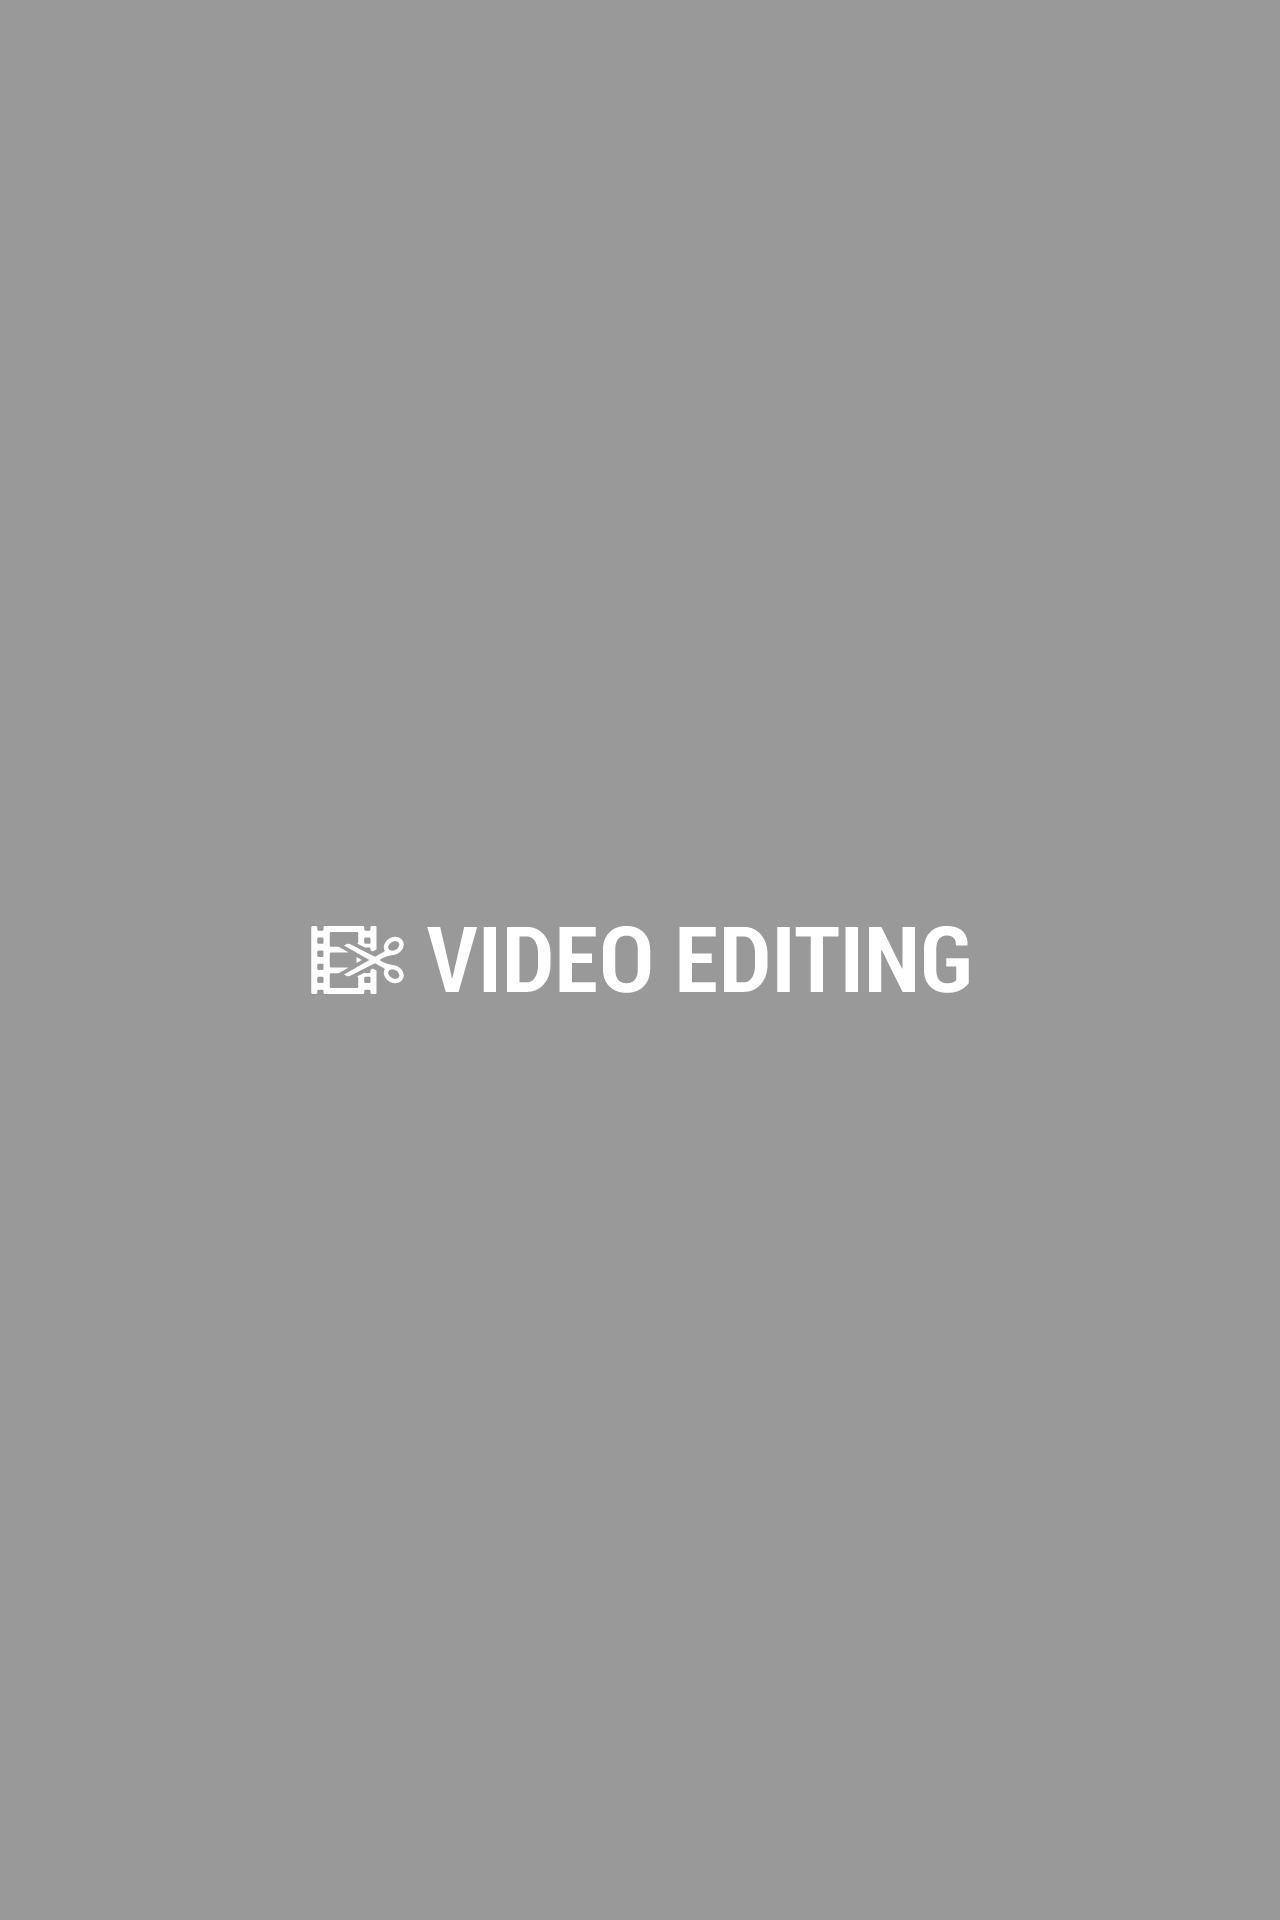 Blog---Video-Editing---Test.png